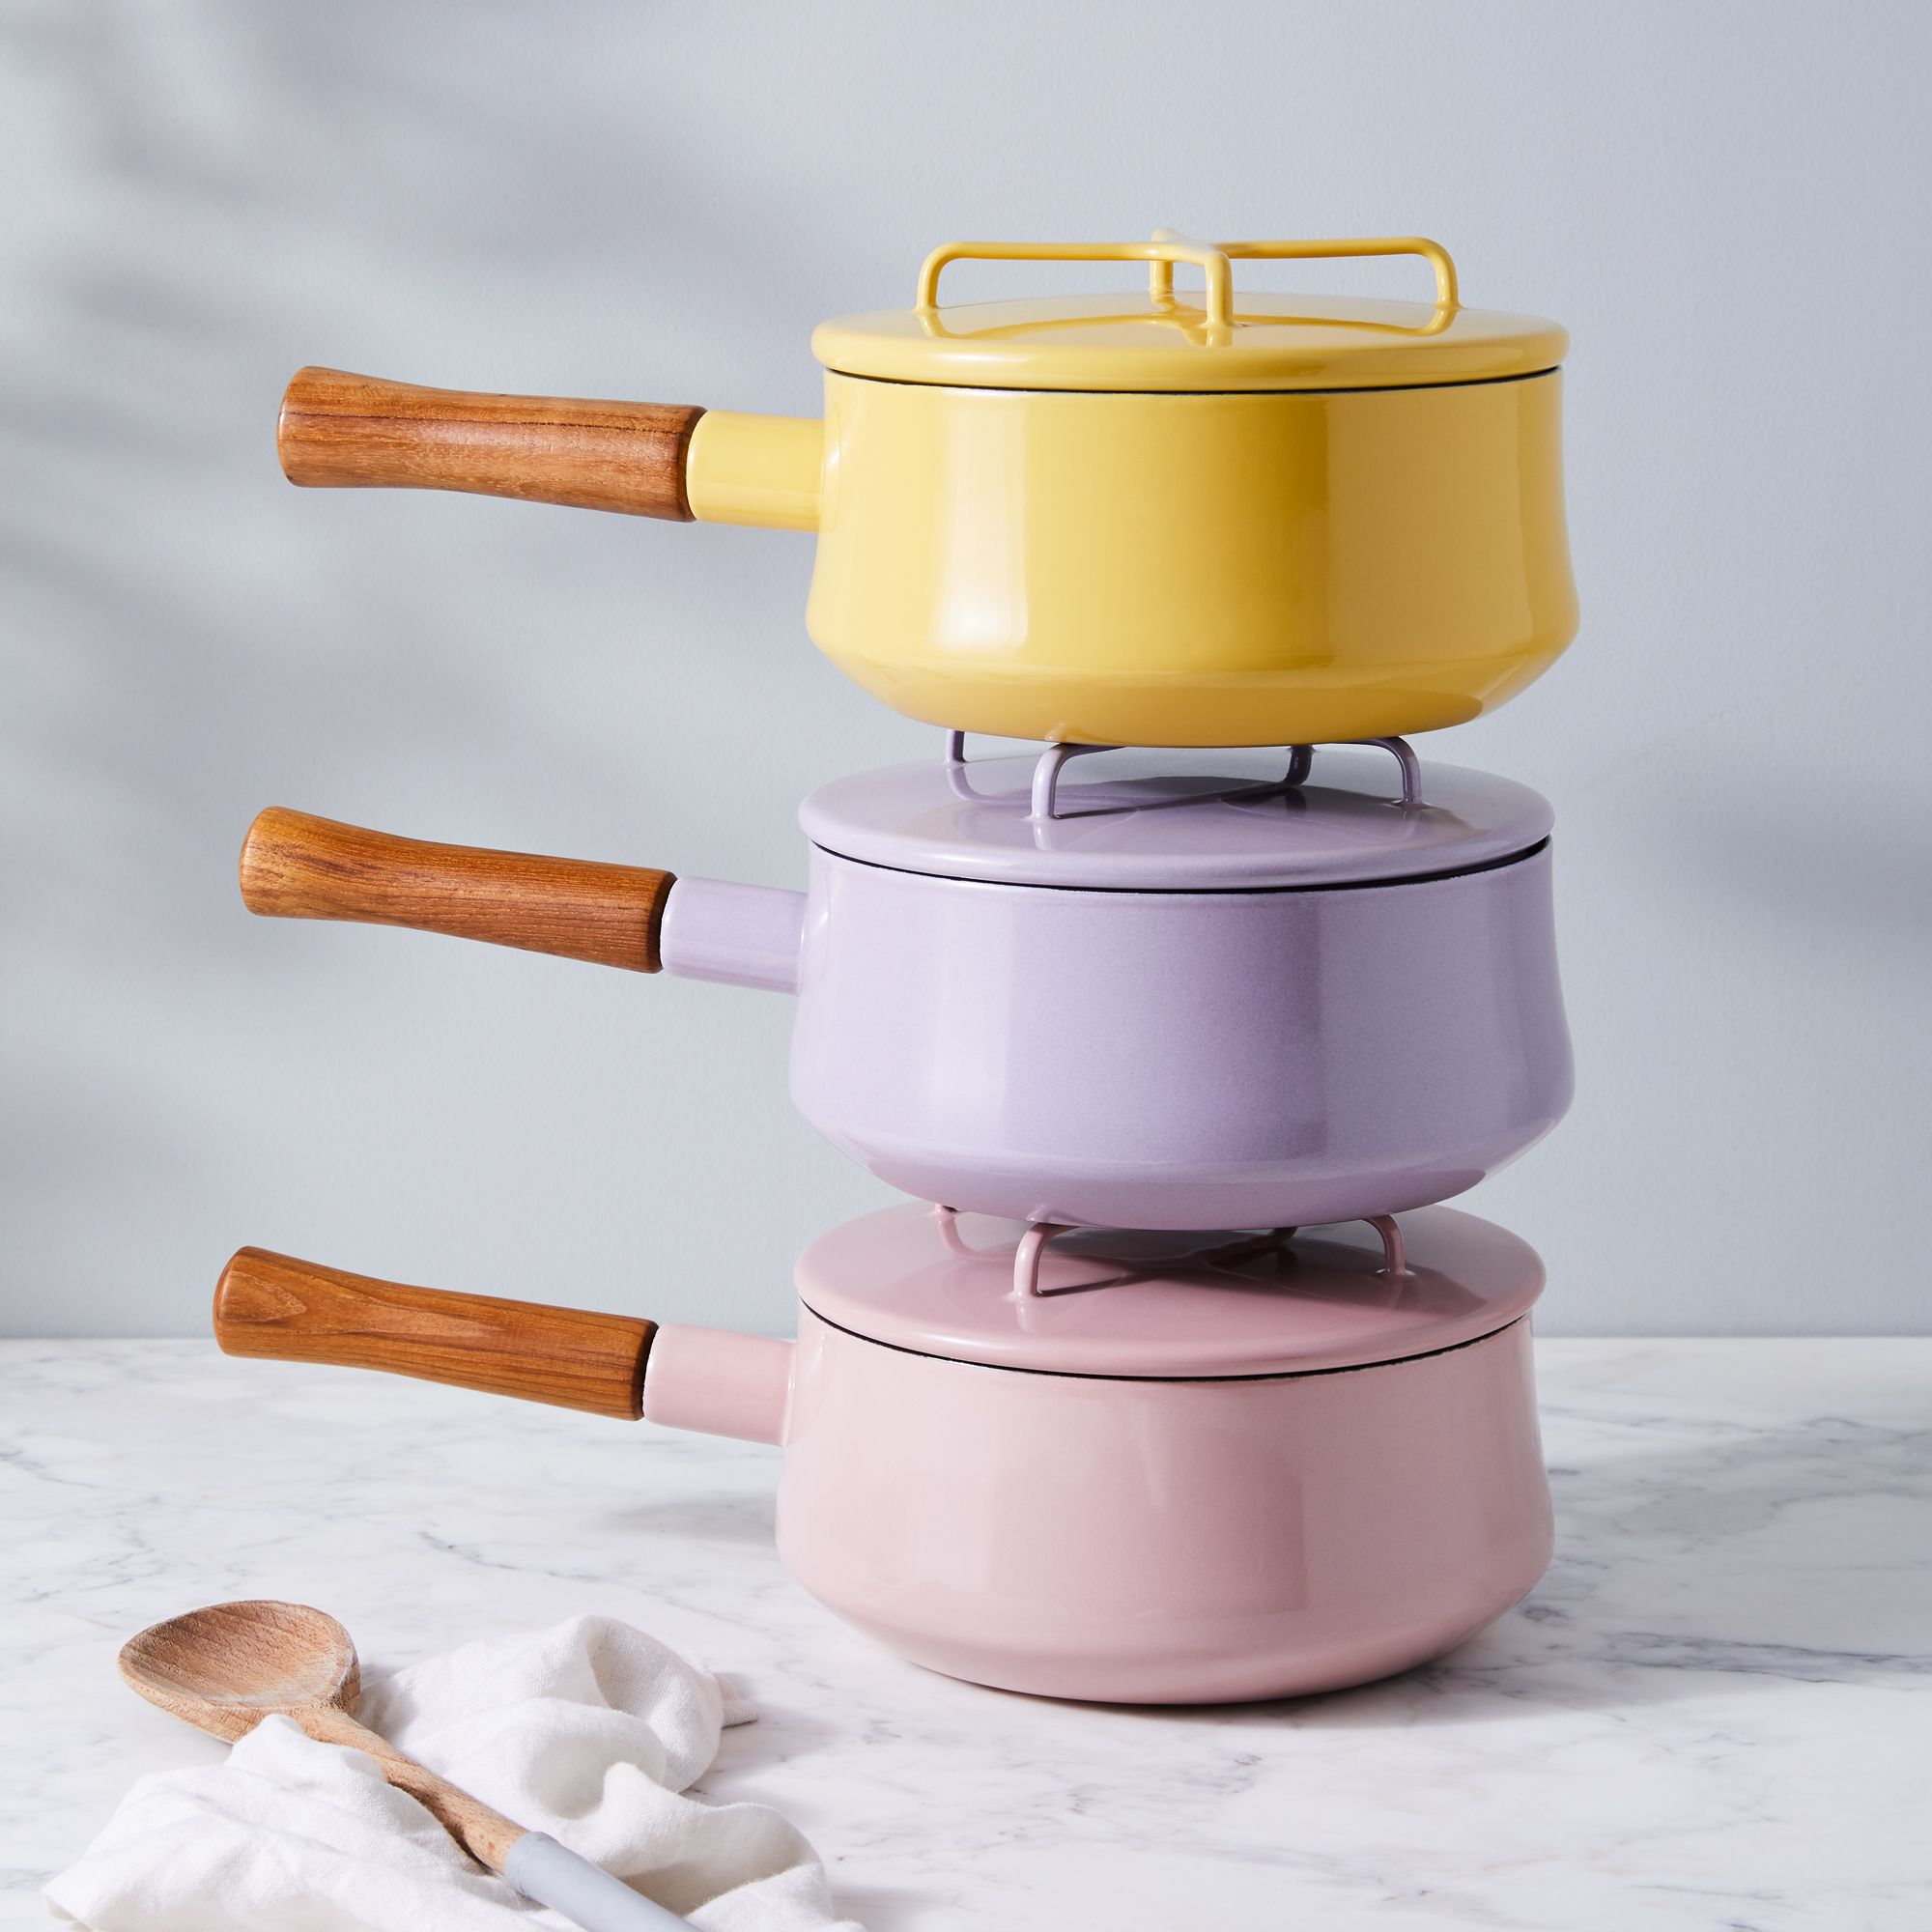 9876264c-b9ab-499a-8a22-d80637e12bbd–2019-0214_dansk_limited-edition_kobenstyle-pastels_stacked-saucepans-w-lids_1x1_ty-mecham_007